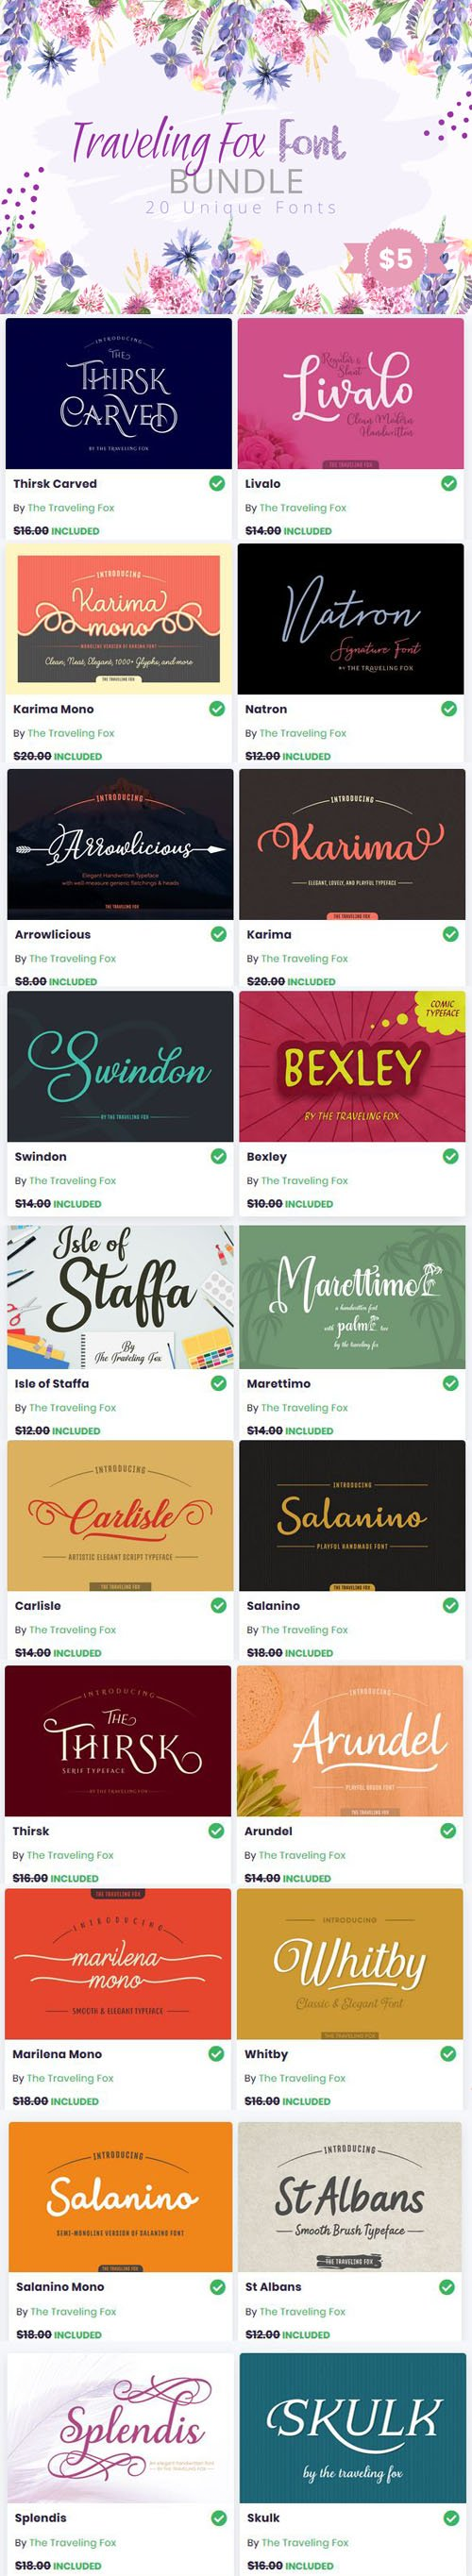 Traveling Fox Font Bundle - 20 Premium Fonts Collection